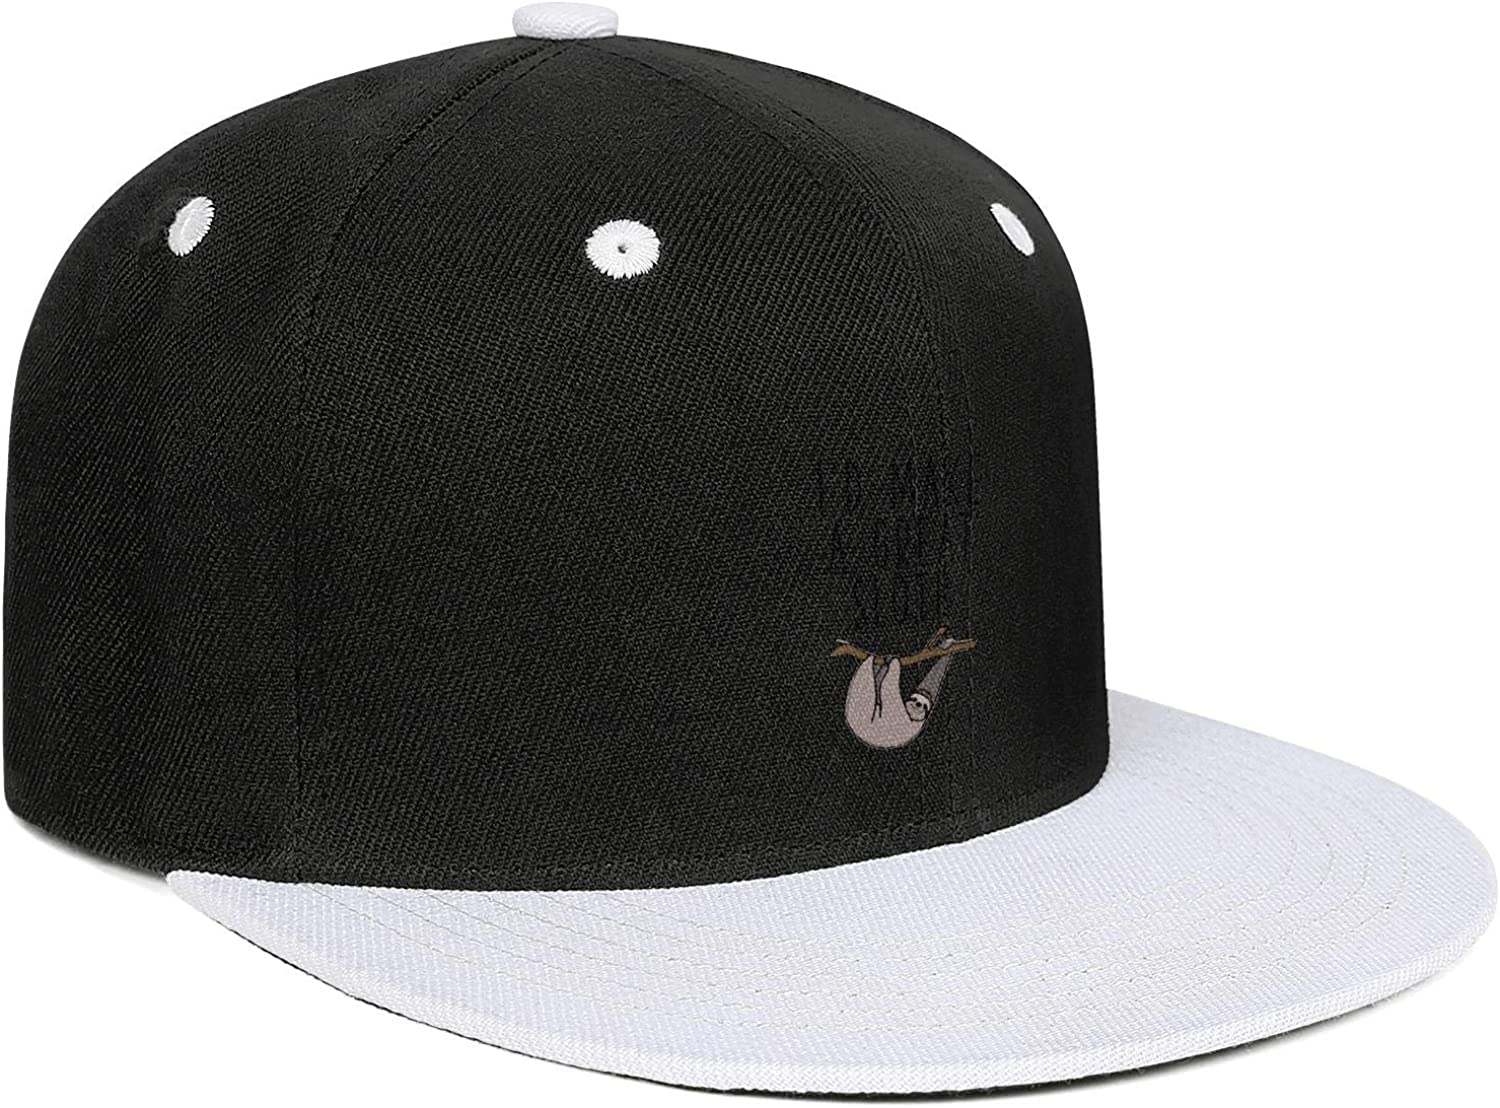 LunchBaggg Id Make a Great Sloth Mens Guys Adjustable CapInteresting Sunscreen Commuter Hat